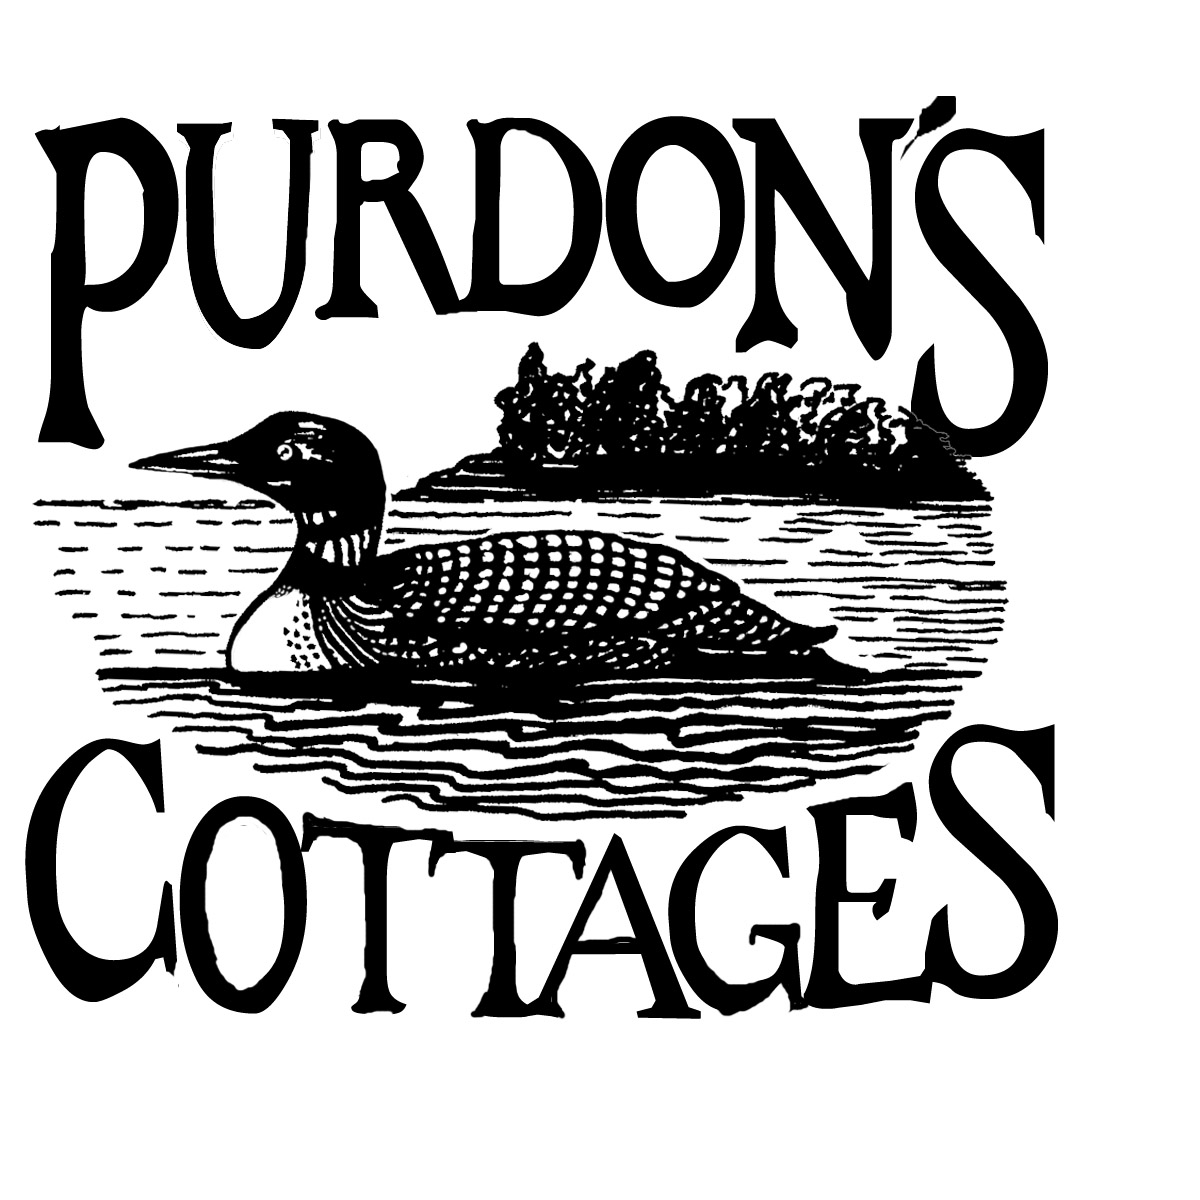 Purdons Cottages Retreat